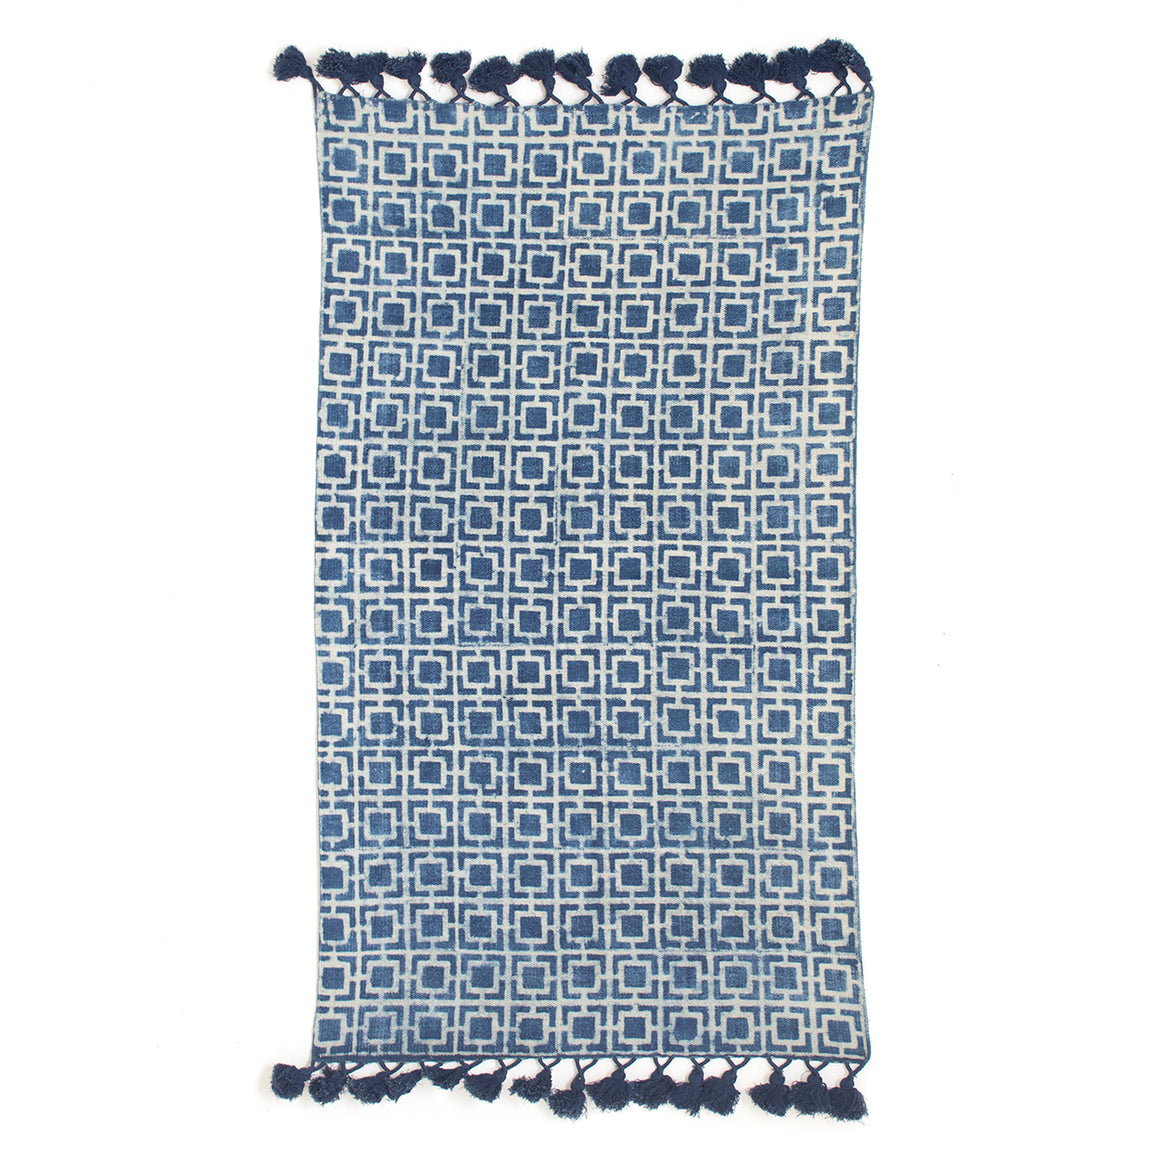 Indian Indigo standard sized 3 by 5 feet long block printed, handwoven naturally plant dyed rug 'Squares'